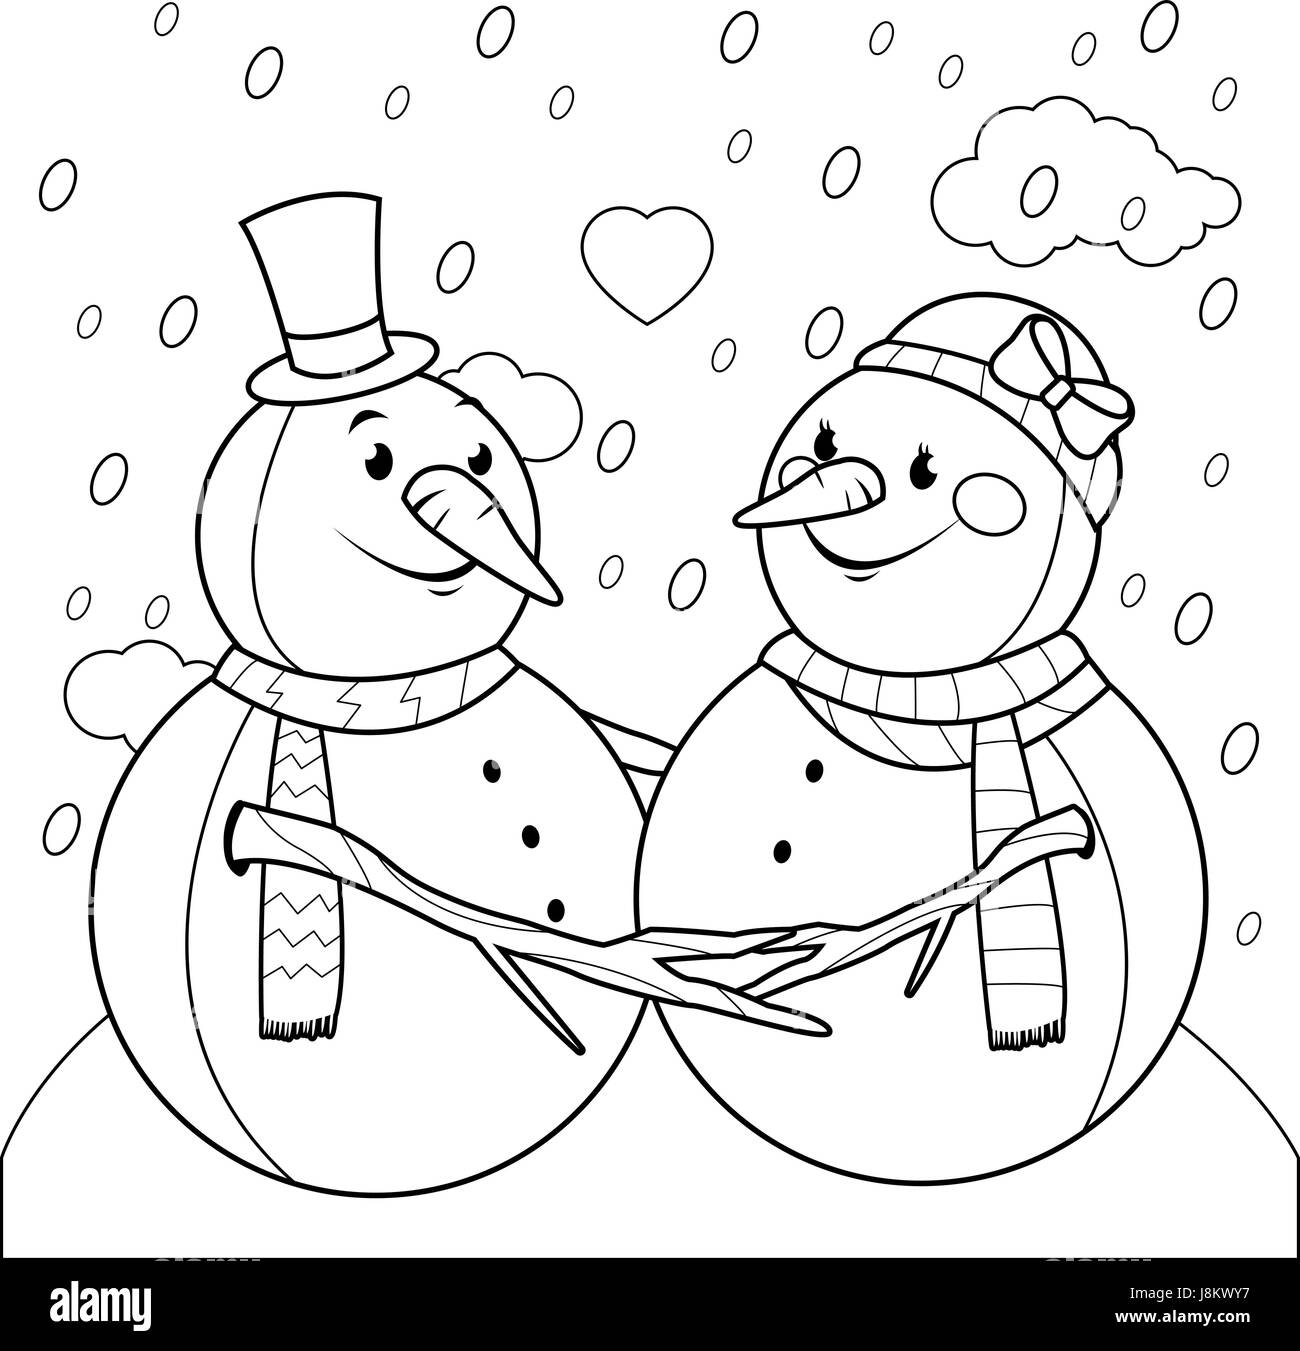 coloring pages of snowman.html